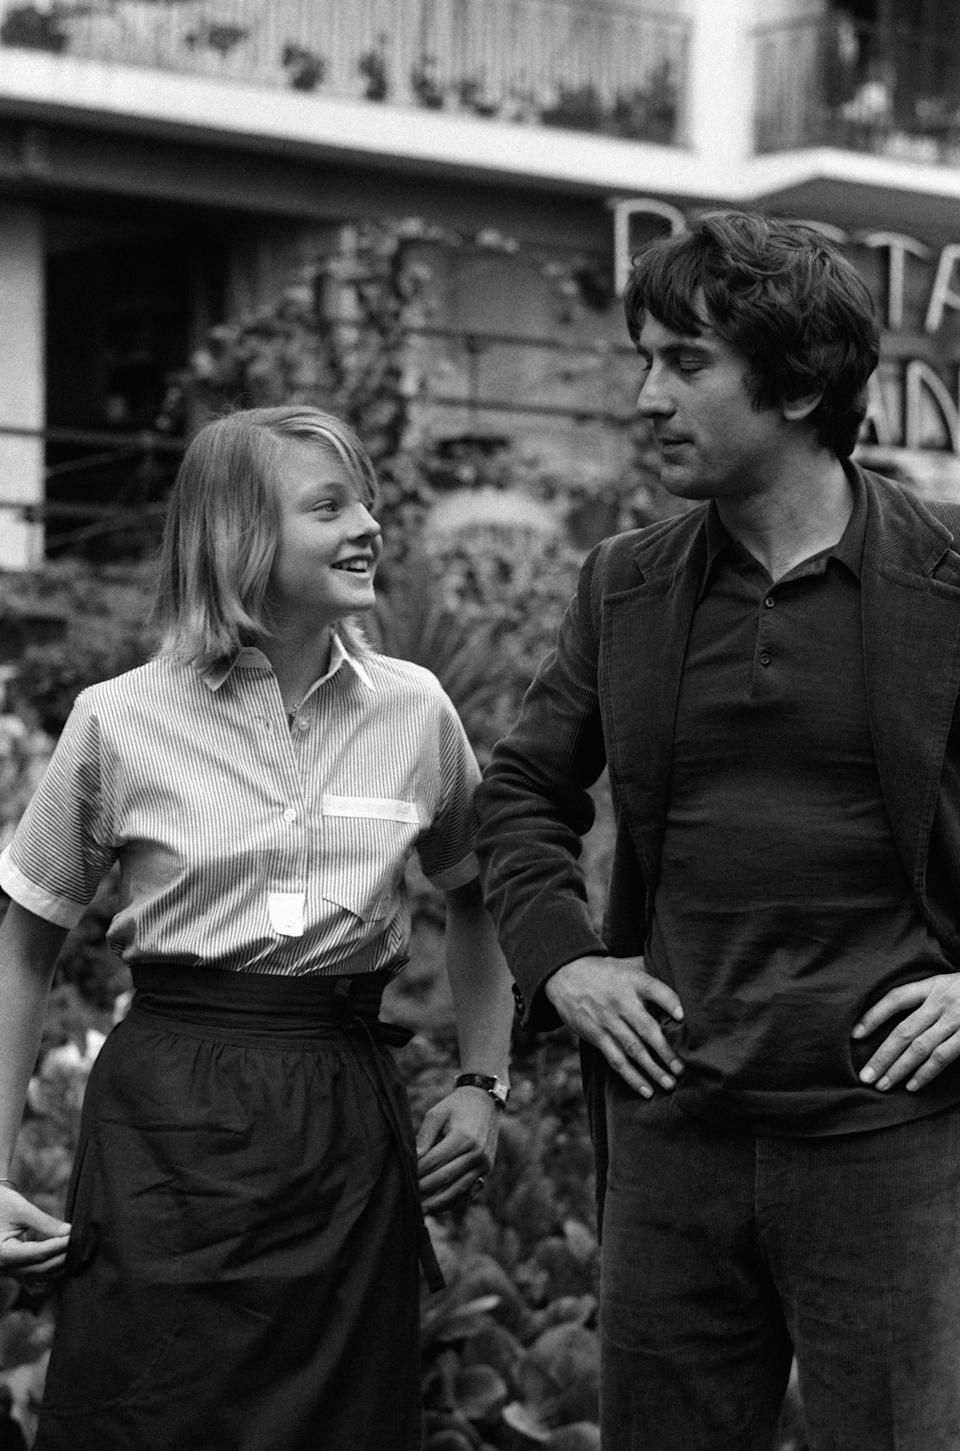 CANNES, FRANCE - MAY: Jodie Foster and Robert De Niro, actors of movie Taxi Driver directed by Martin Scorsese at Cannes Film Festival in May 1976 in Cannes, France. (Photo by Pool GINFRAY/SIMON/Gamma-Rapho via Getty Images)